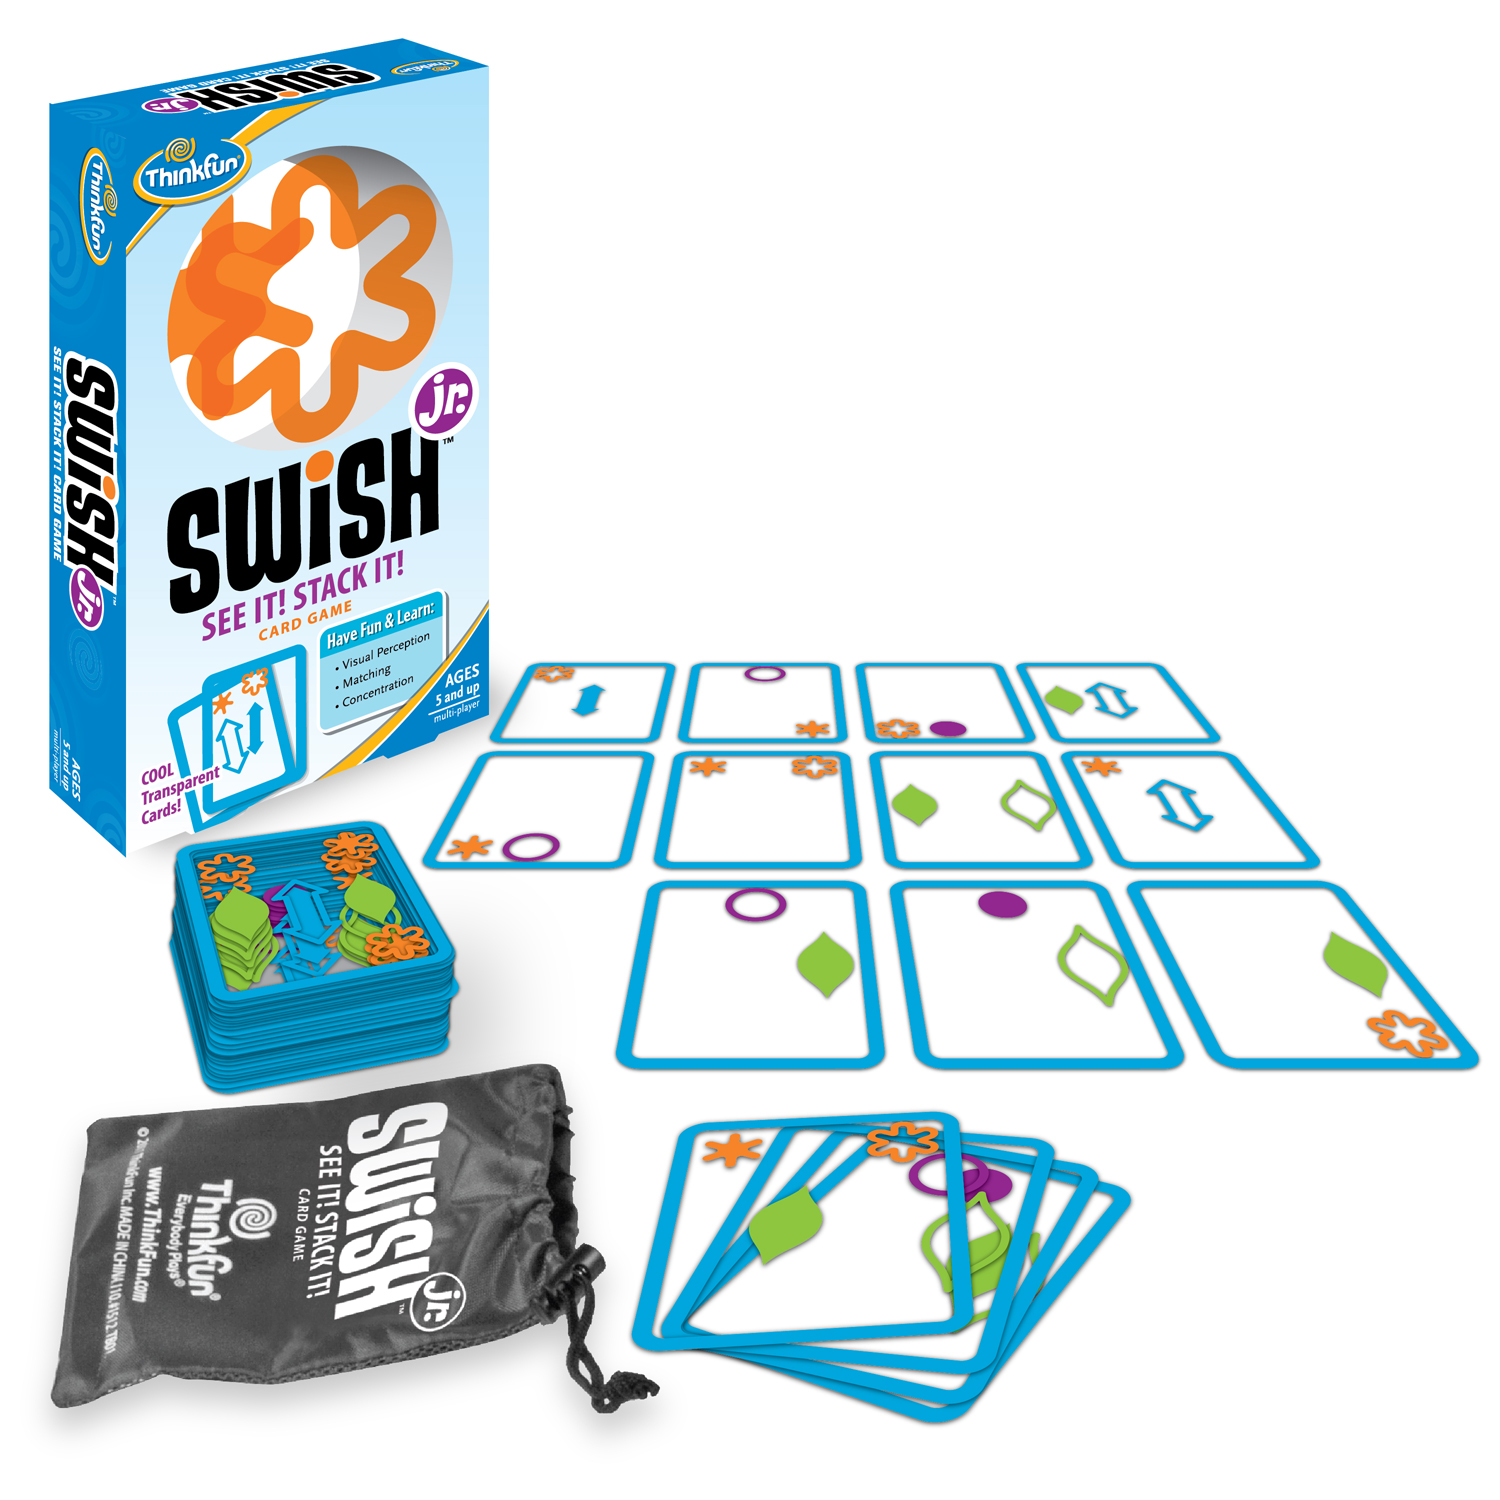 Evan And Lauren S Cool Blog 2 4 13 Thinkfun Swish Jr